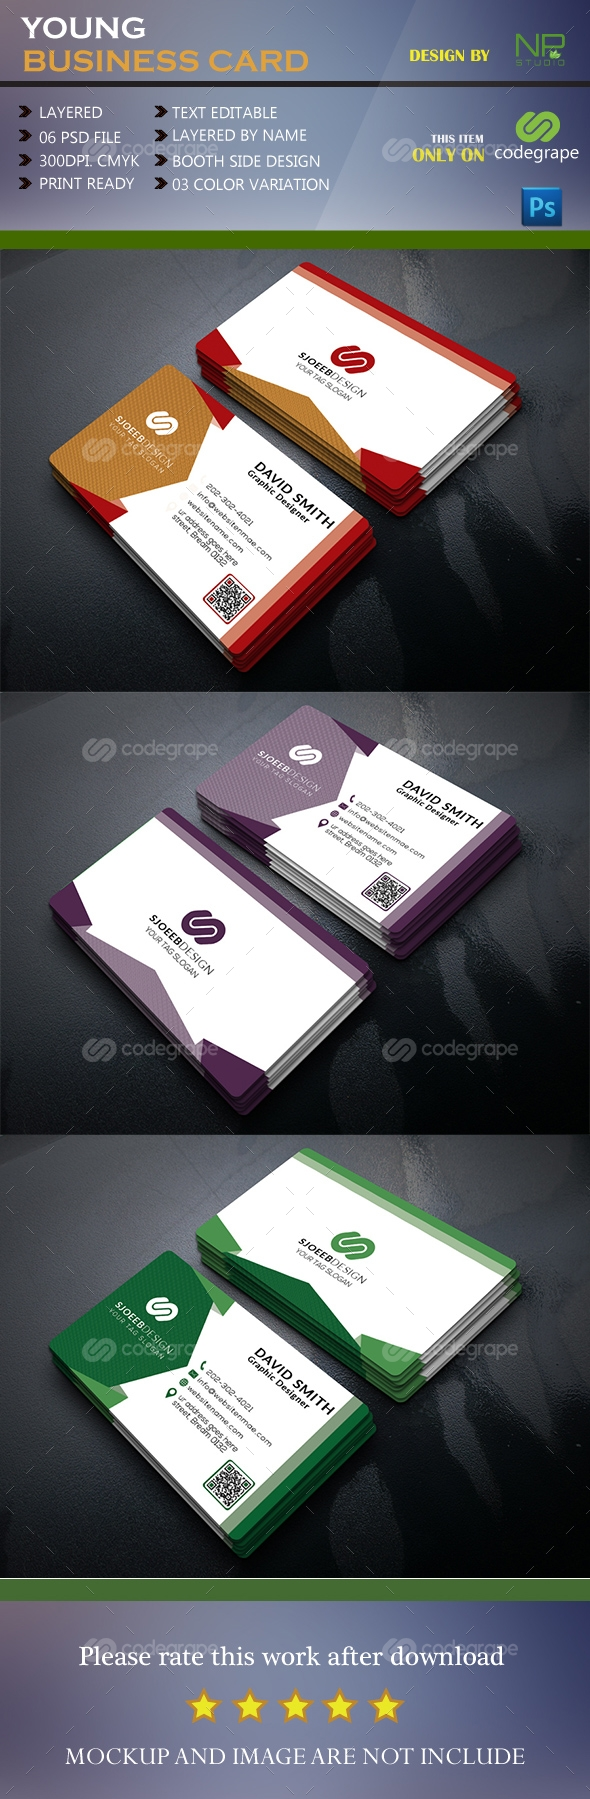 Young Business Card